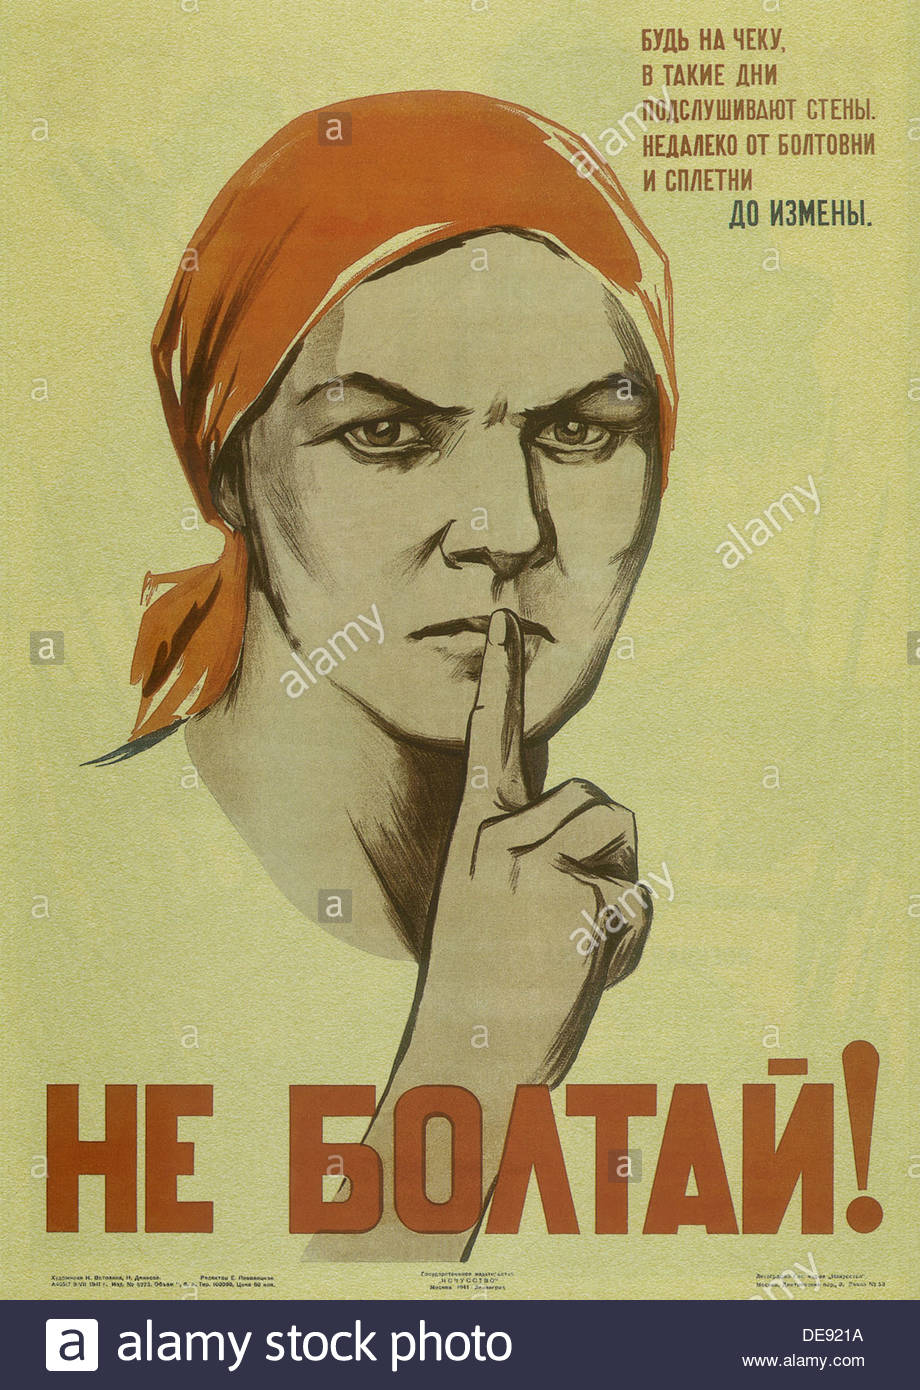 Do not chat! (Poster), 1941. Artist: Vatolina, Nina Nikolayevna (1915-2002) - Stock Image